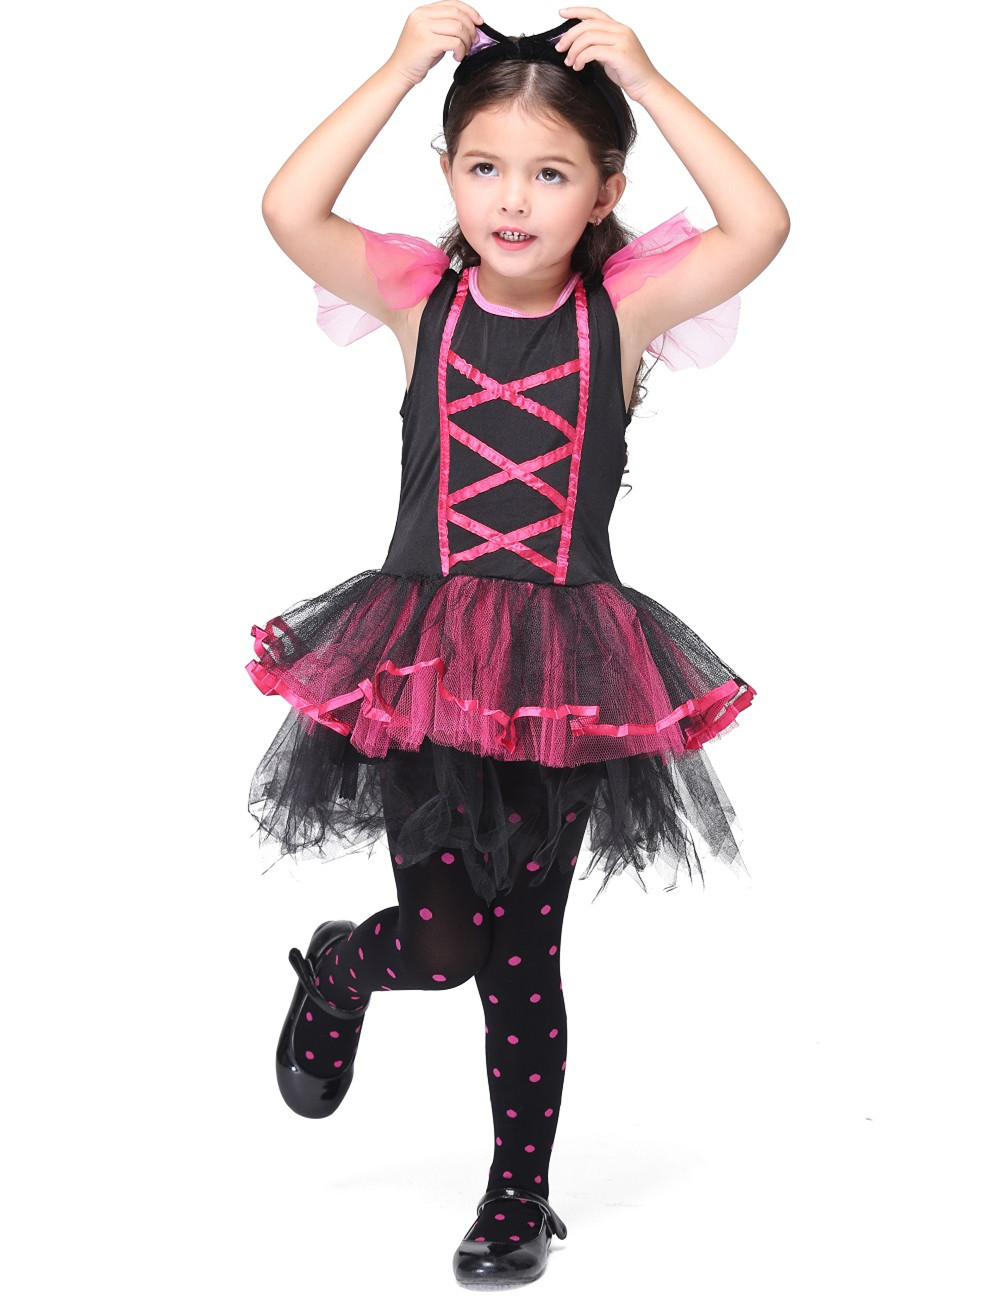 Children Girls Catwoman Dress Costume Halloween Costume for Kids Stage & Dance Wear Dress Toddler Summer Short Sleeve Skirt